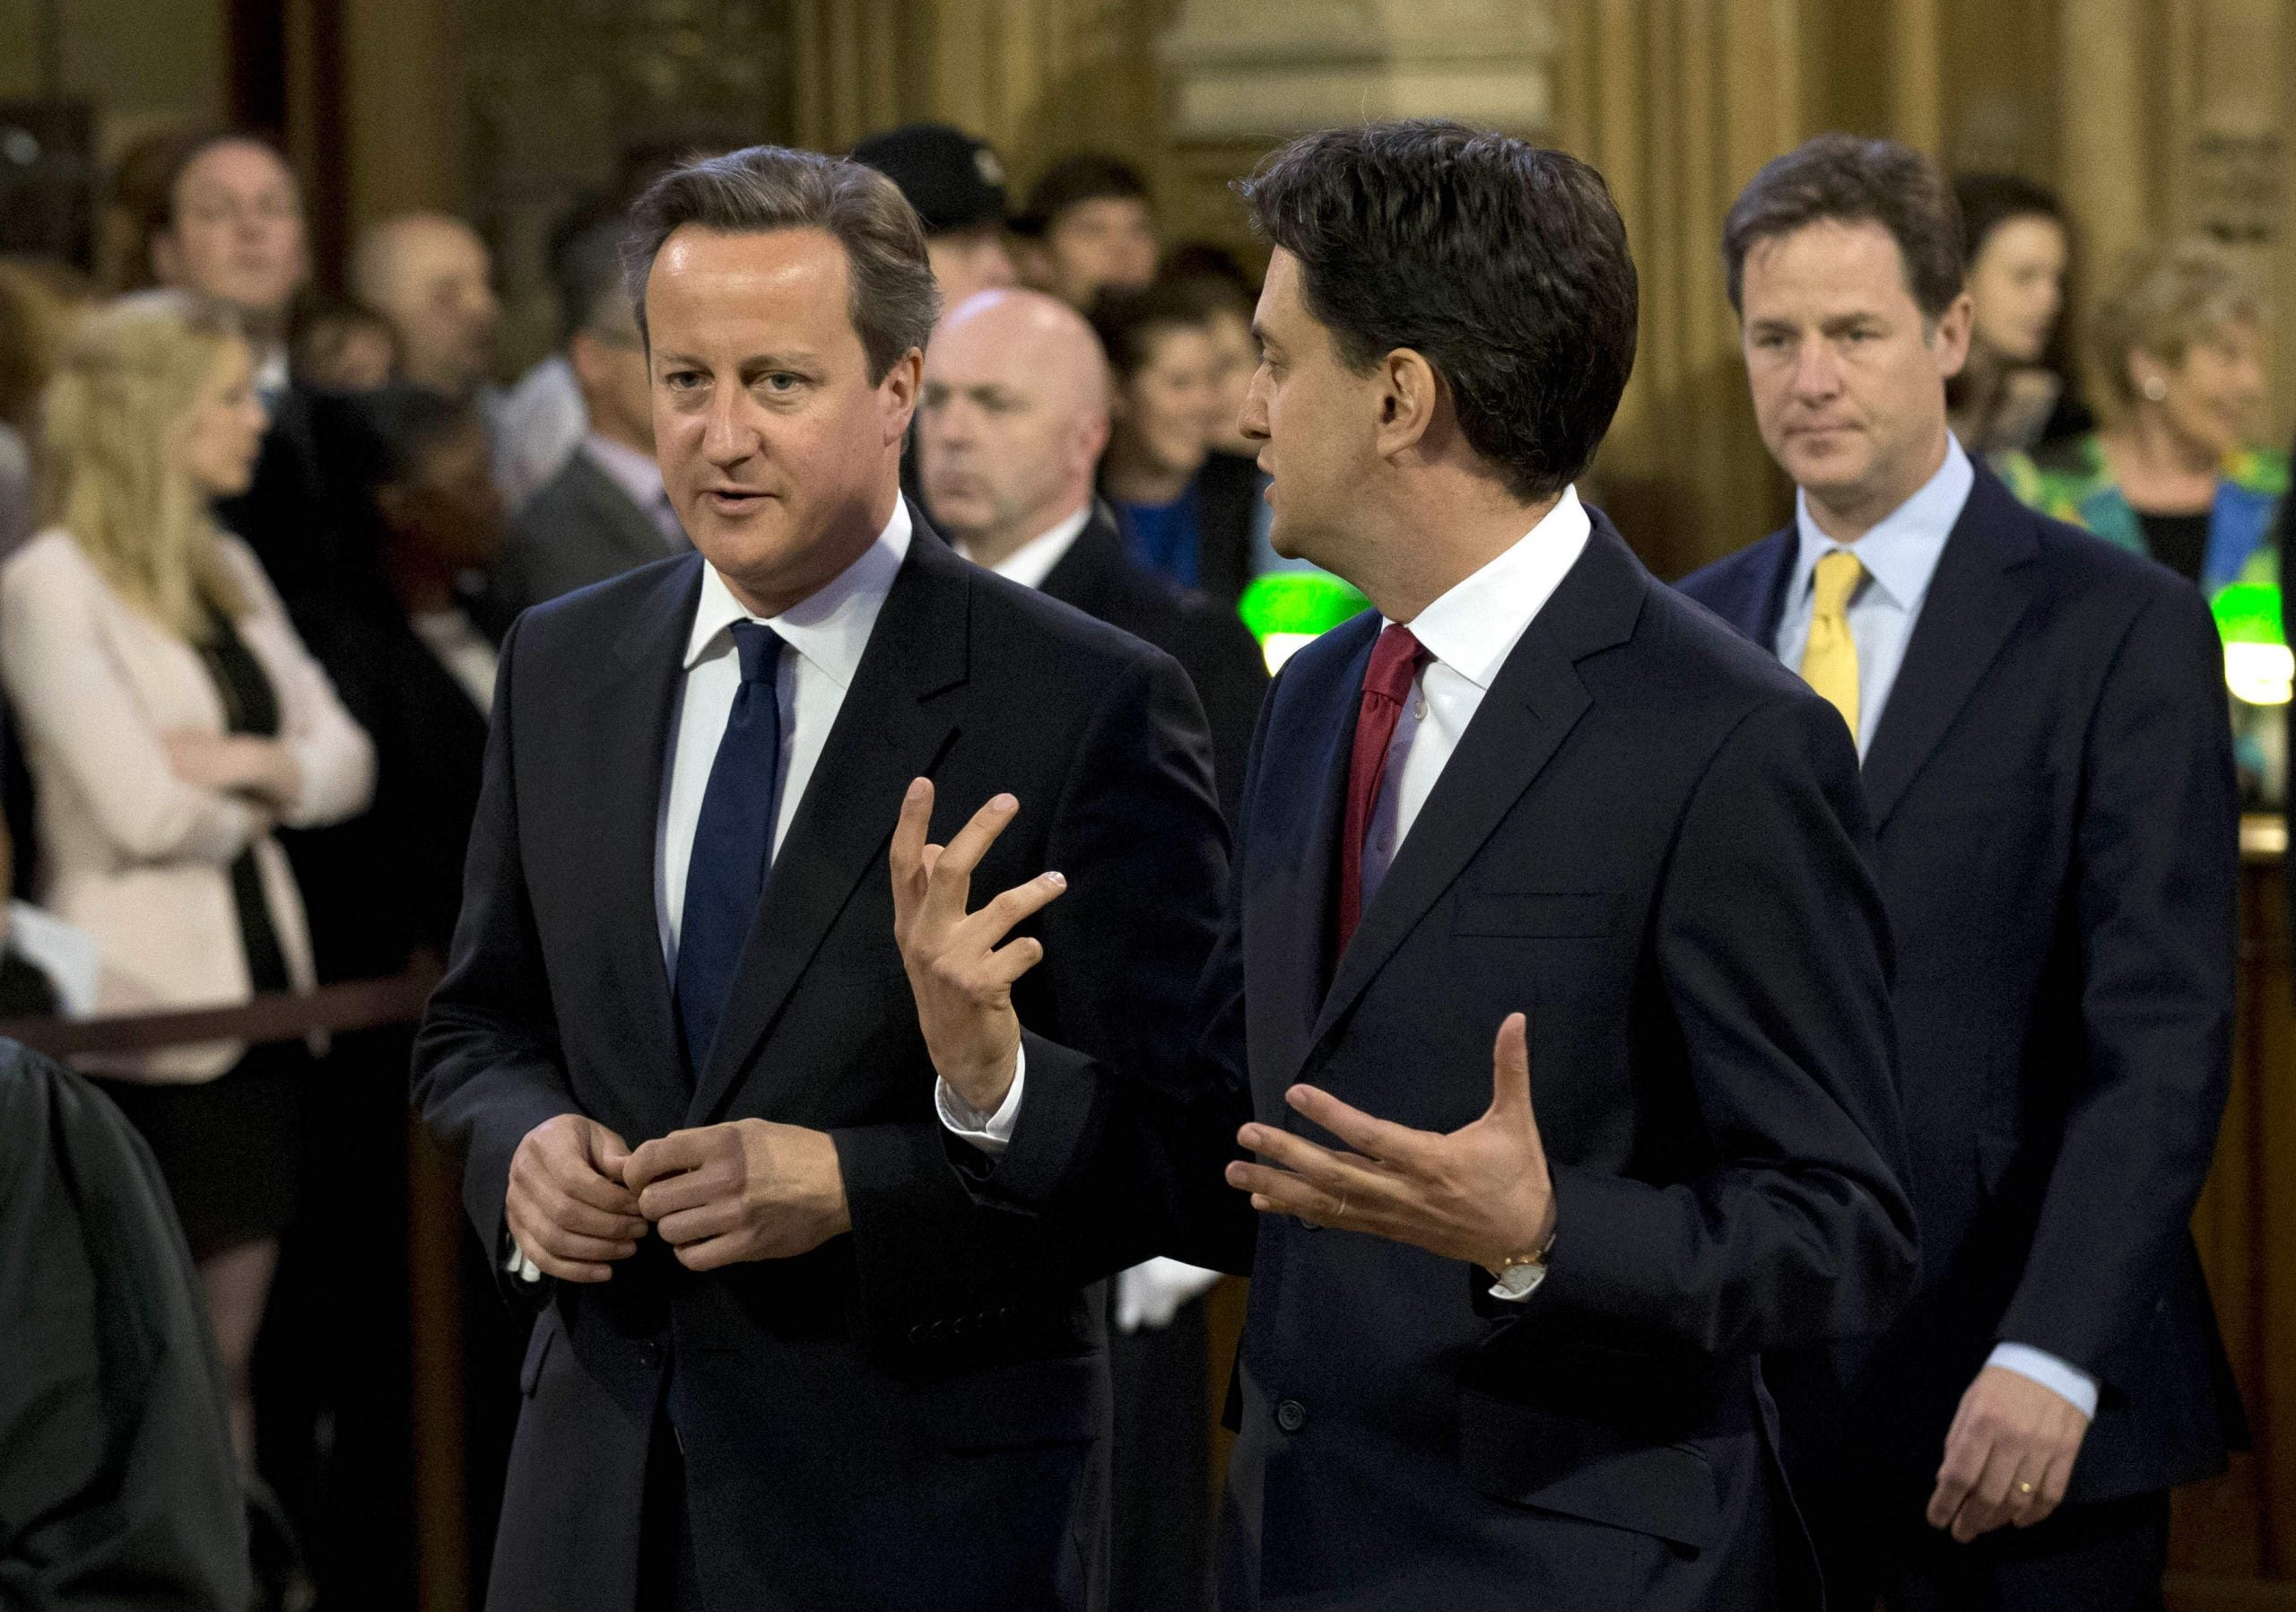 Cameron is nearly twice as personally popular as Miliband